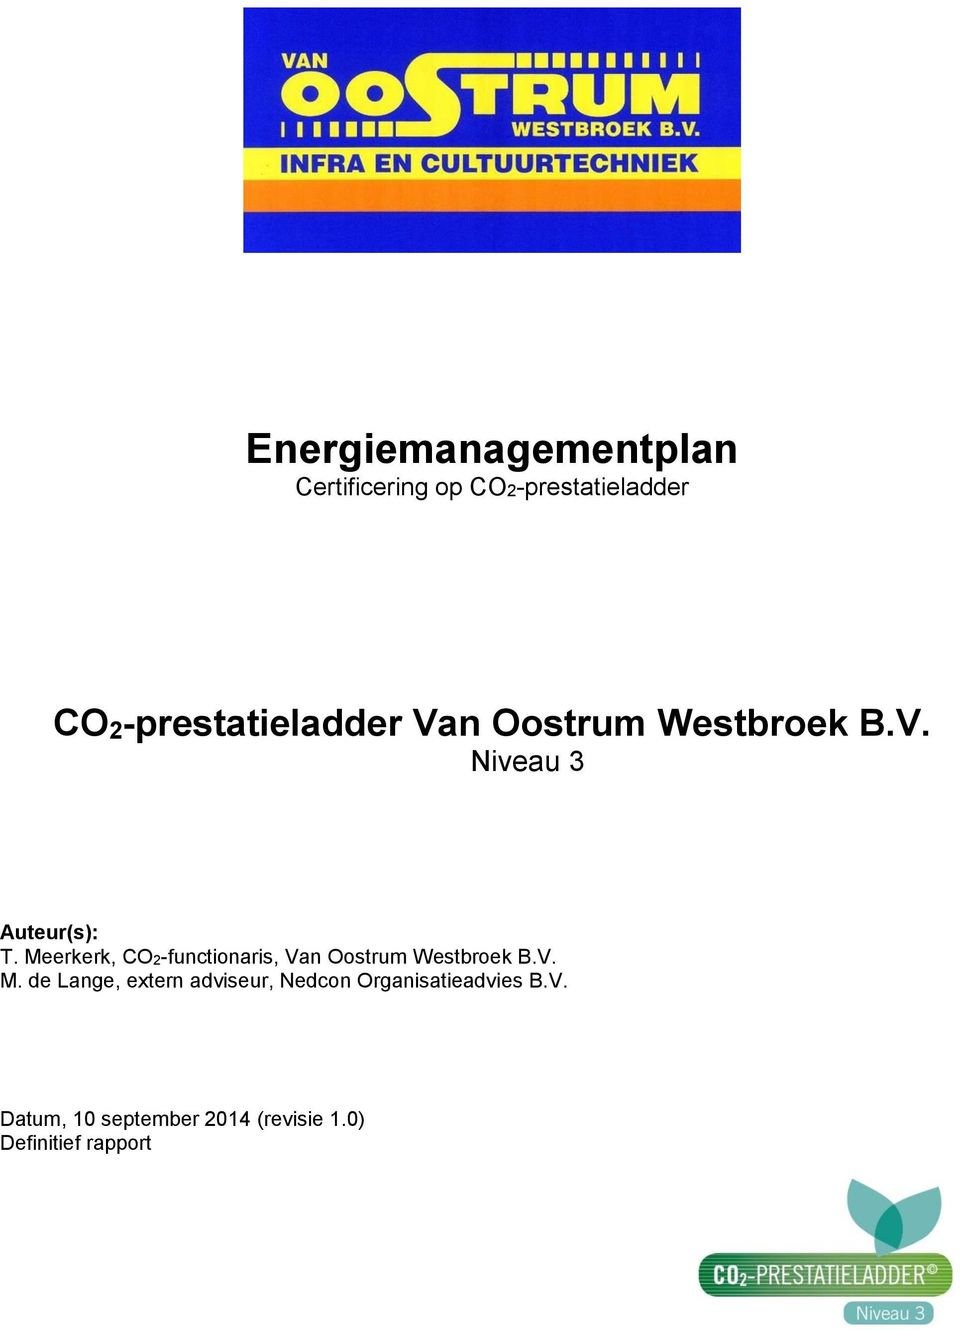 Meerkerk, CO2-functionaris, Van Oostrum Westbroek B.V. M.